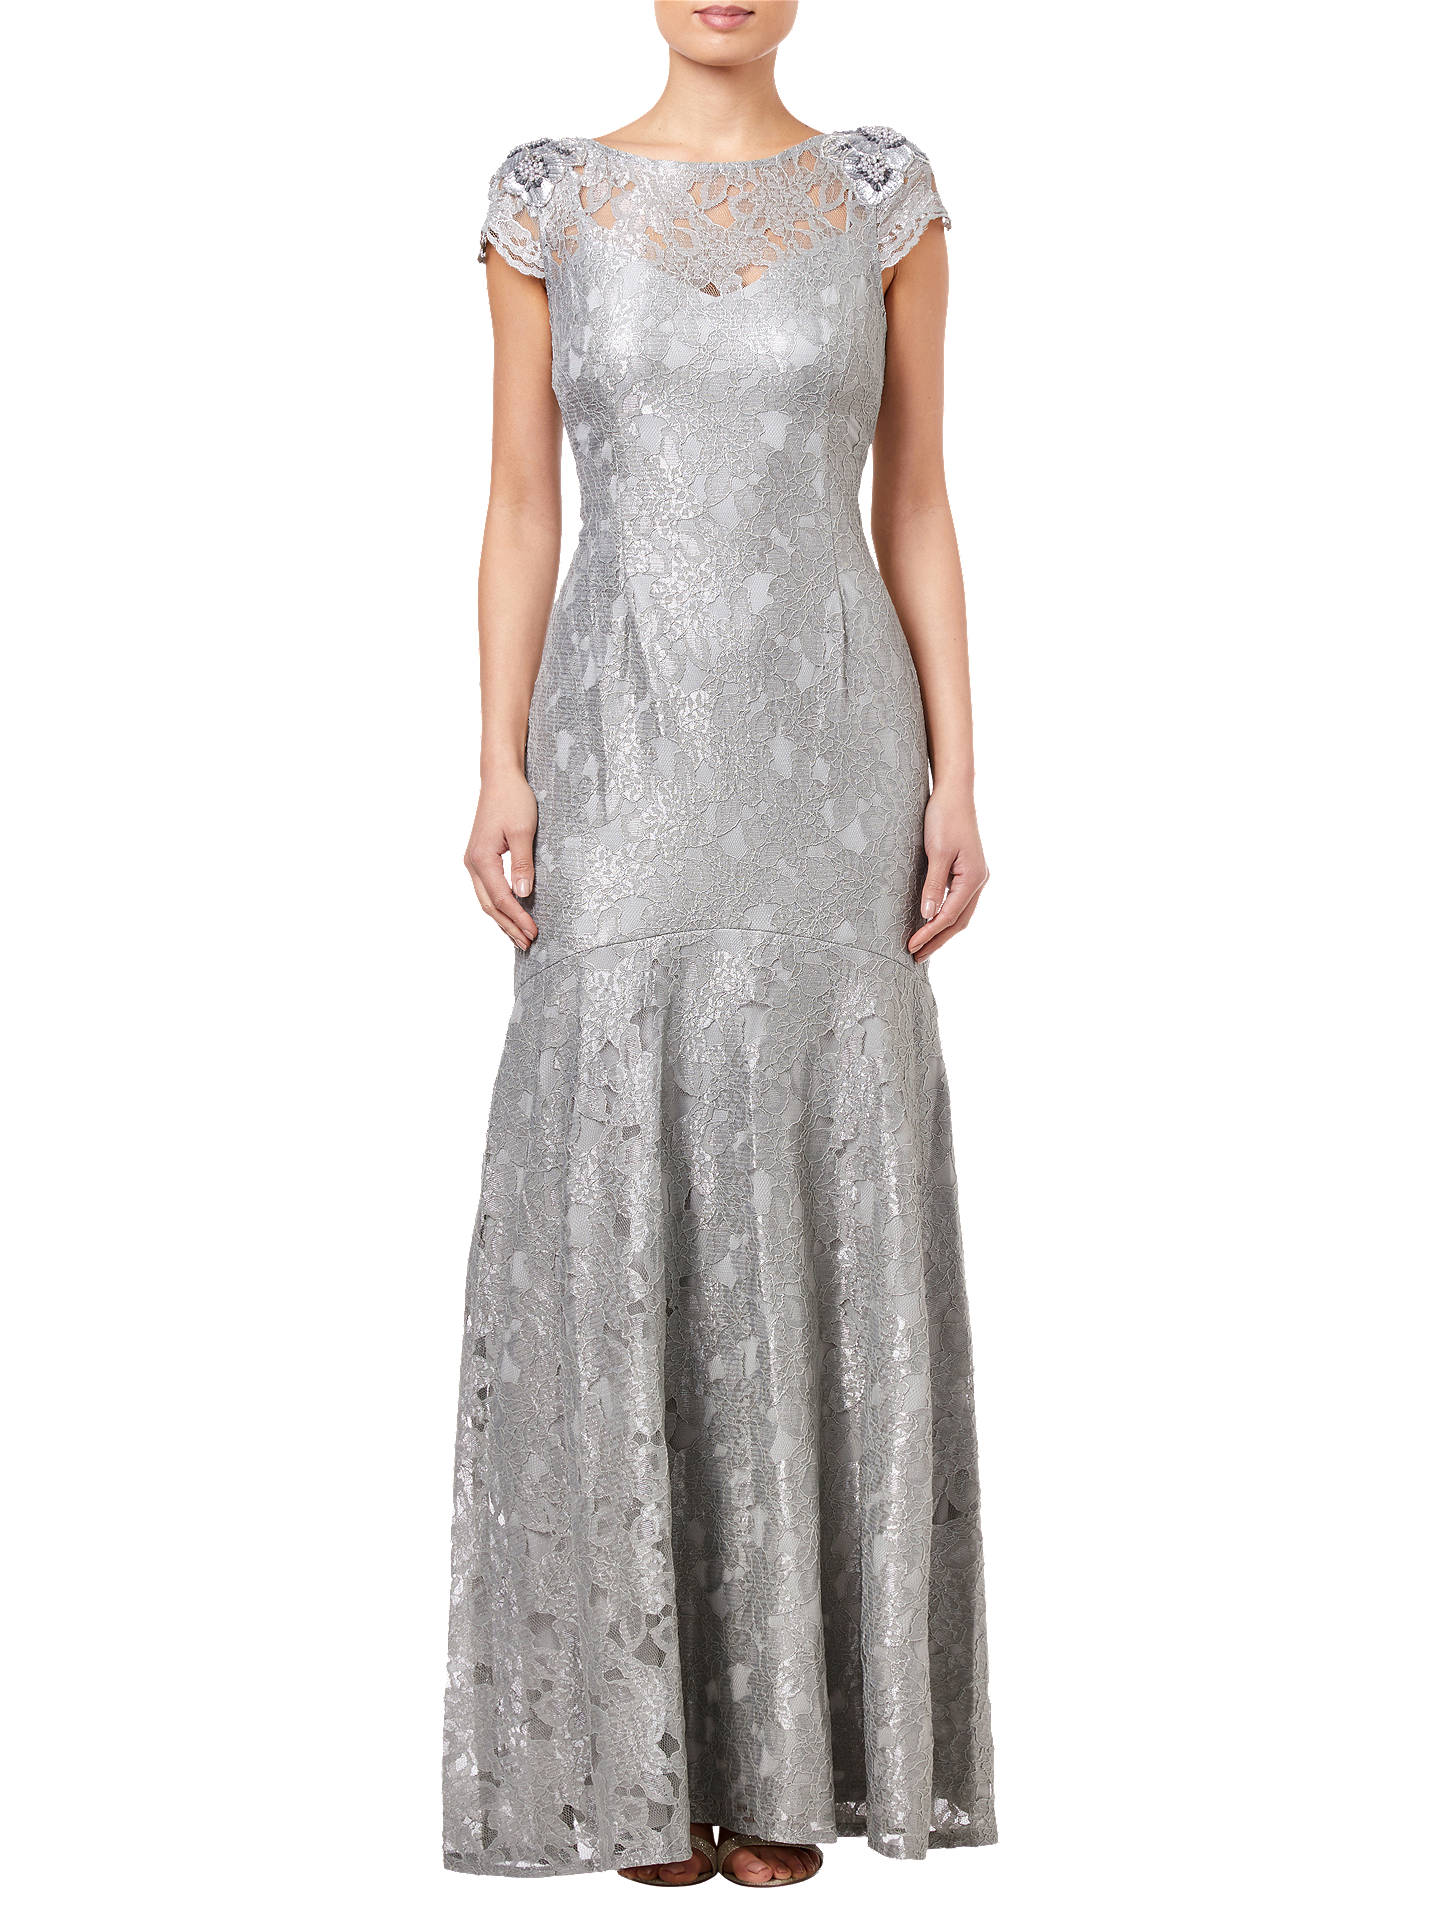 Buy Adrianna Papell Long Metallic Lace Dress, Silver Slate, 8 Online at johnlewis.com